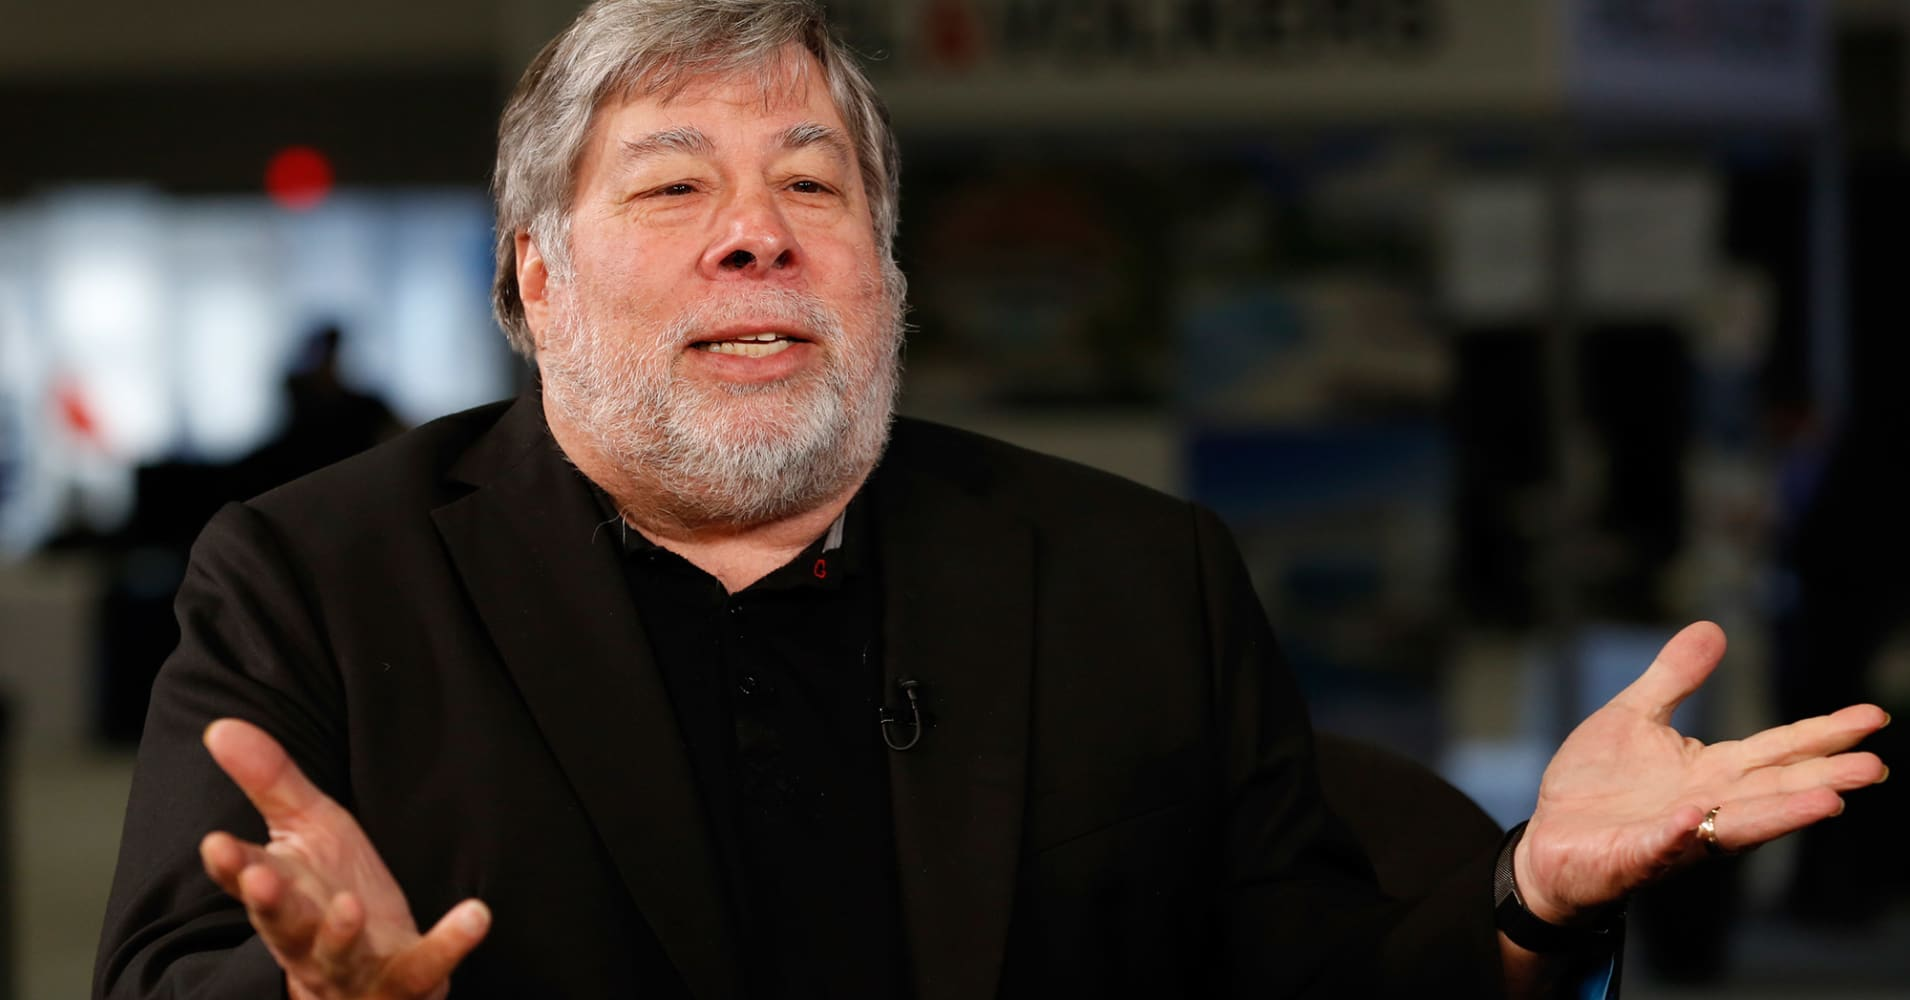 Steve Wozniak explains why he used to agree with Elon Musk, Stephen Hawking on A.I. — but now he doesn't